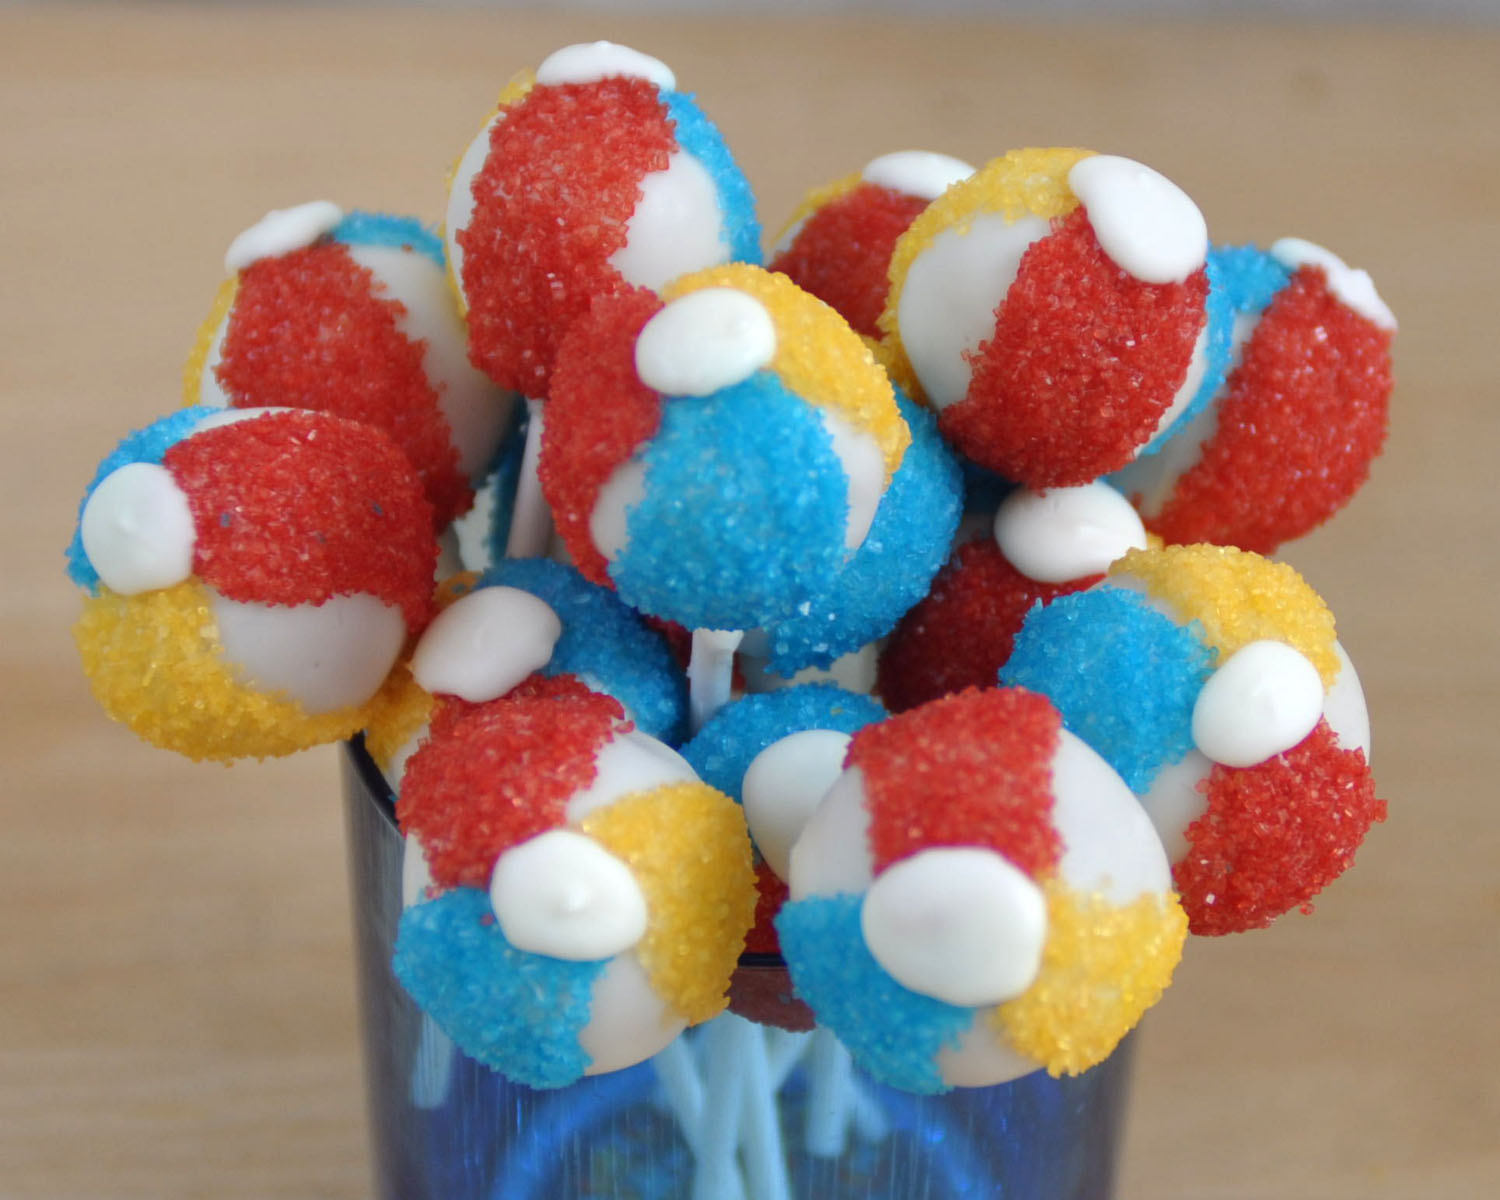 Beki Cooks Cake Blog Beach Ball Cake Pops